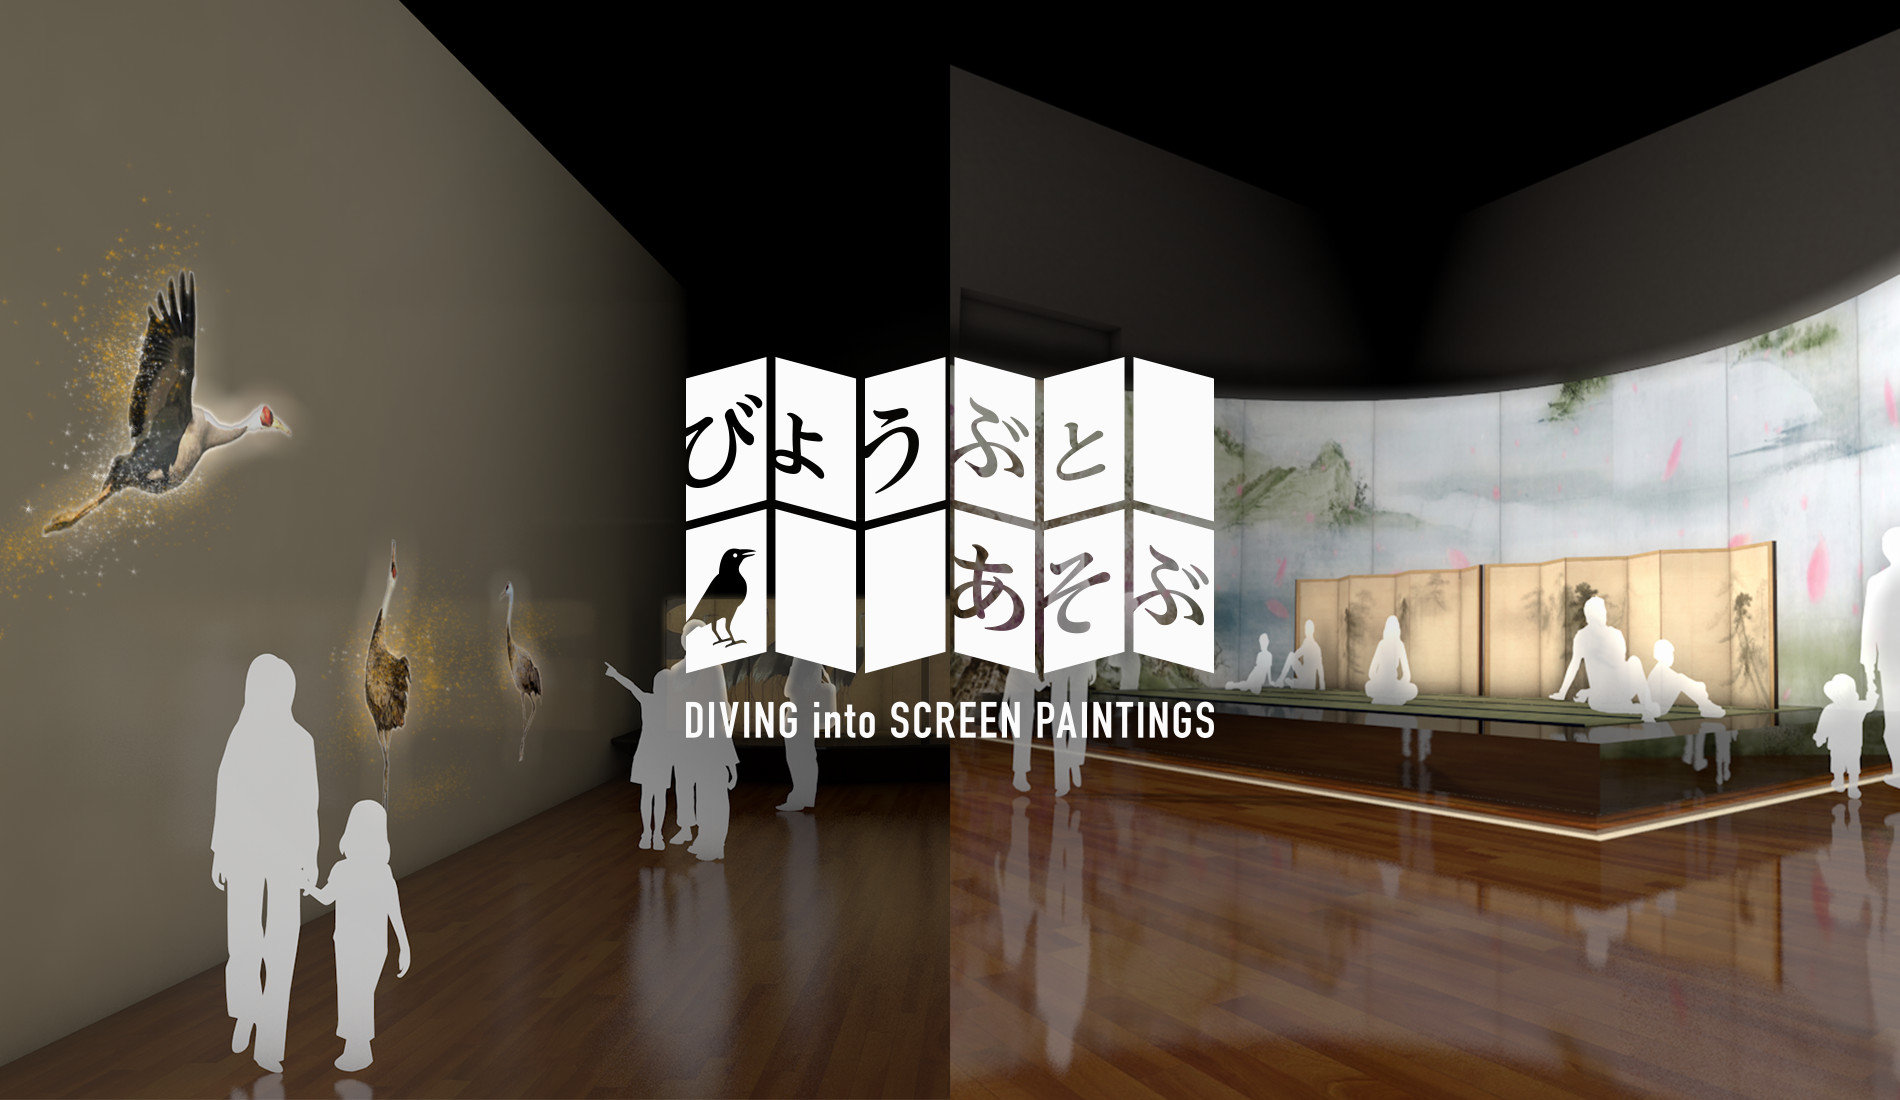 Diving into Screen Paintings: A New Way to Experience Japanese Art